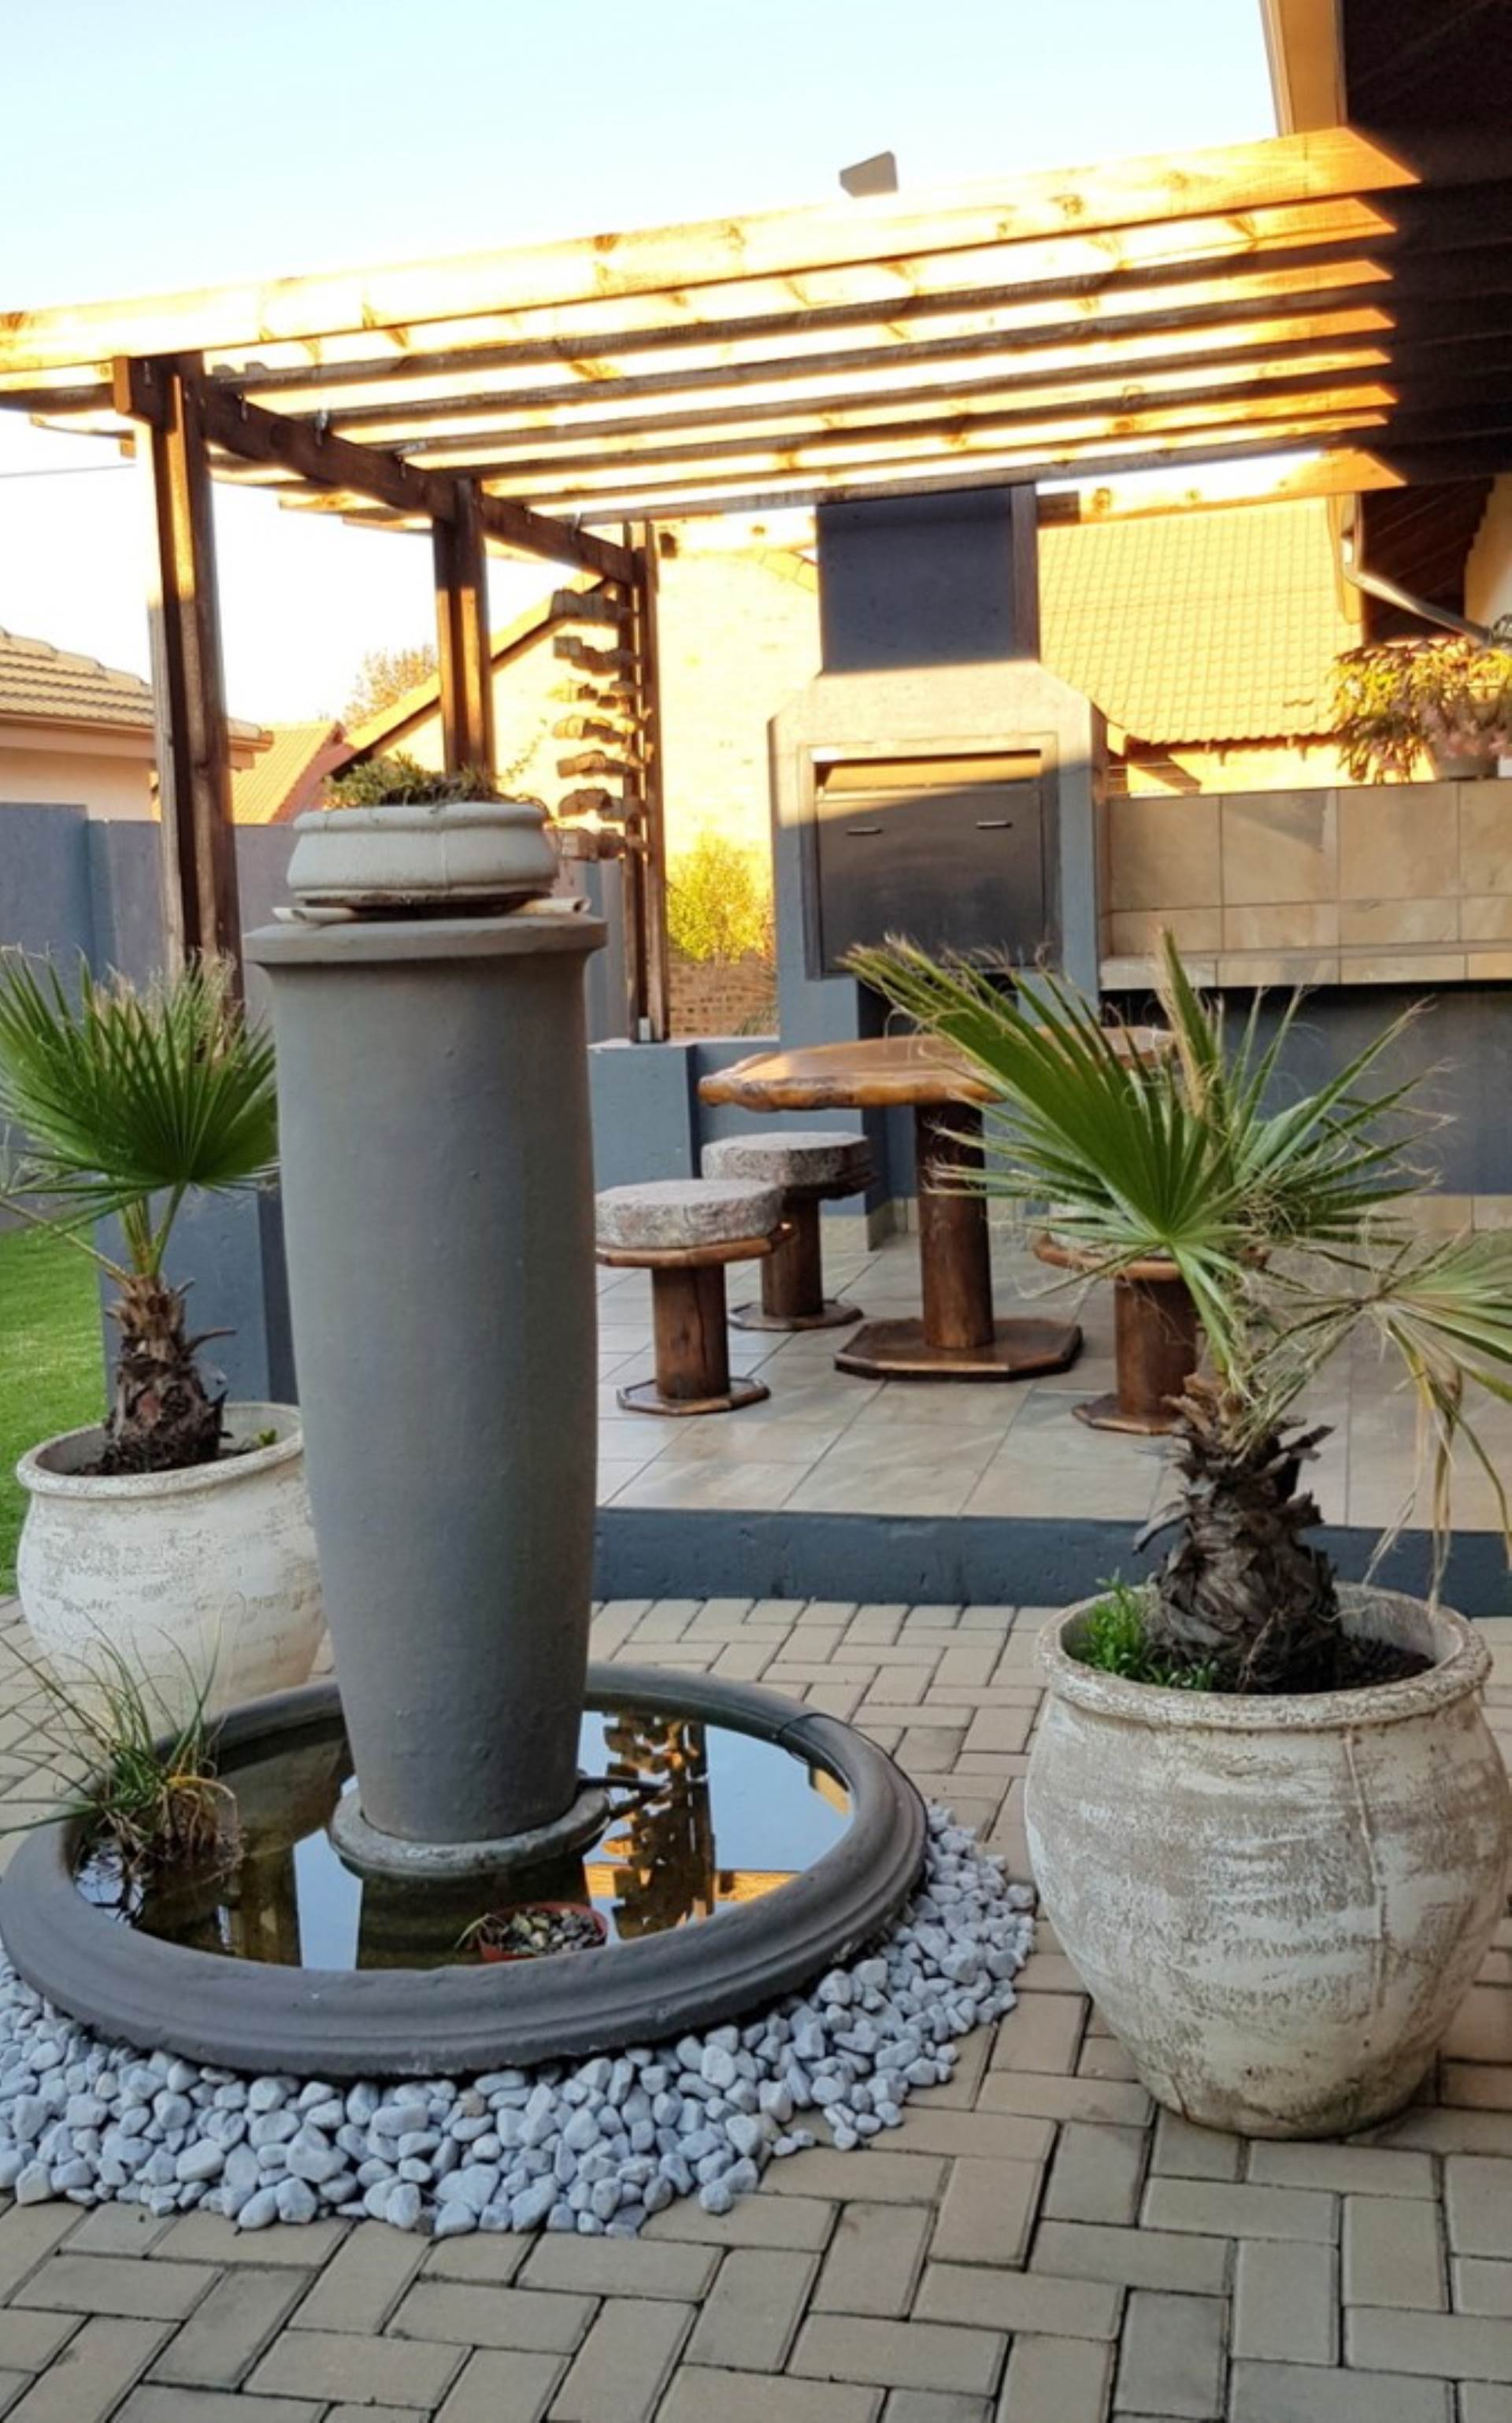 3 BedroomHouse For Sale In Middelburg South